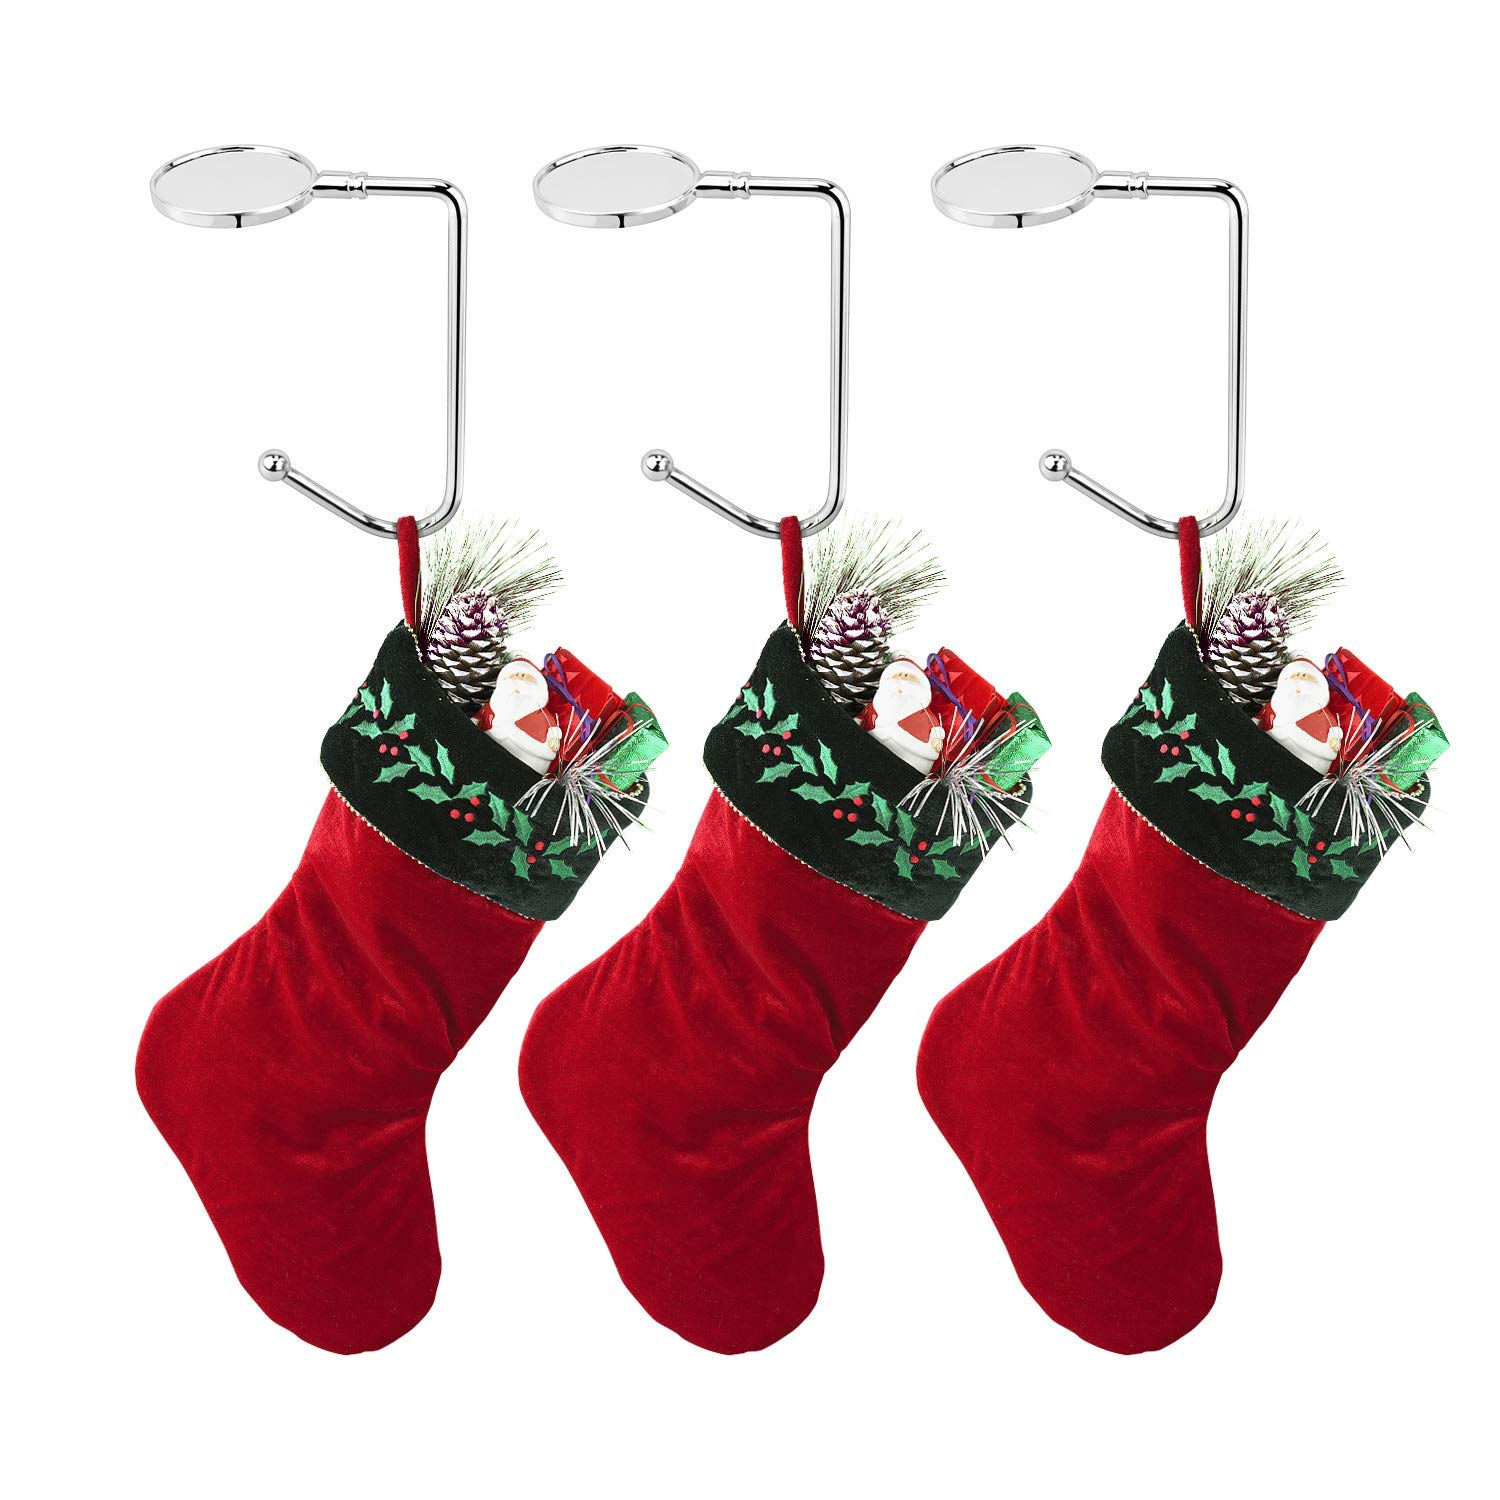 kungfu Mall 3PCS Christmas Stocking Holders Metal Hooks Hanger Grip Clips for Christmas Table Fireplace Hanging Decoration